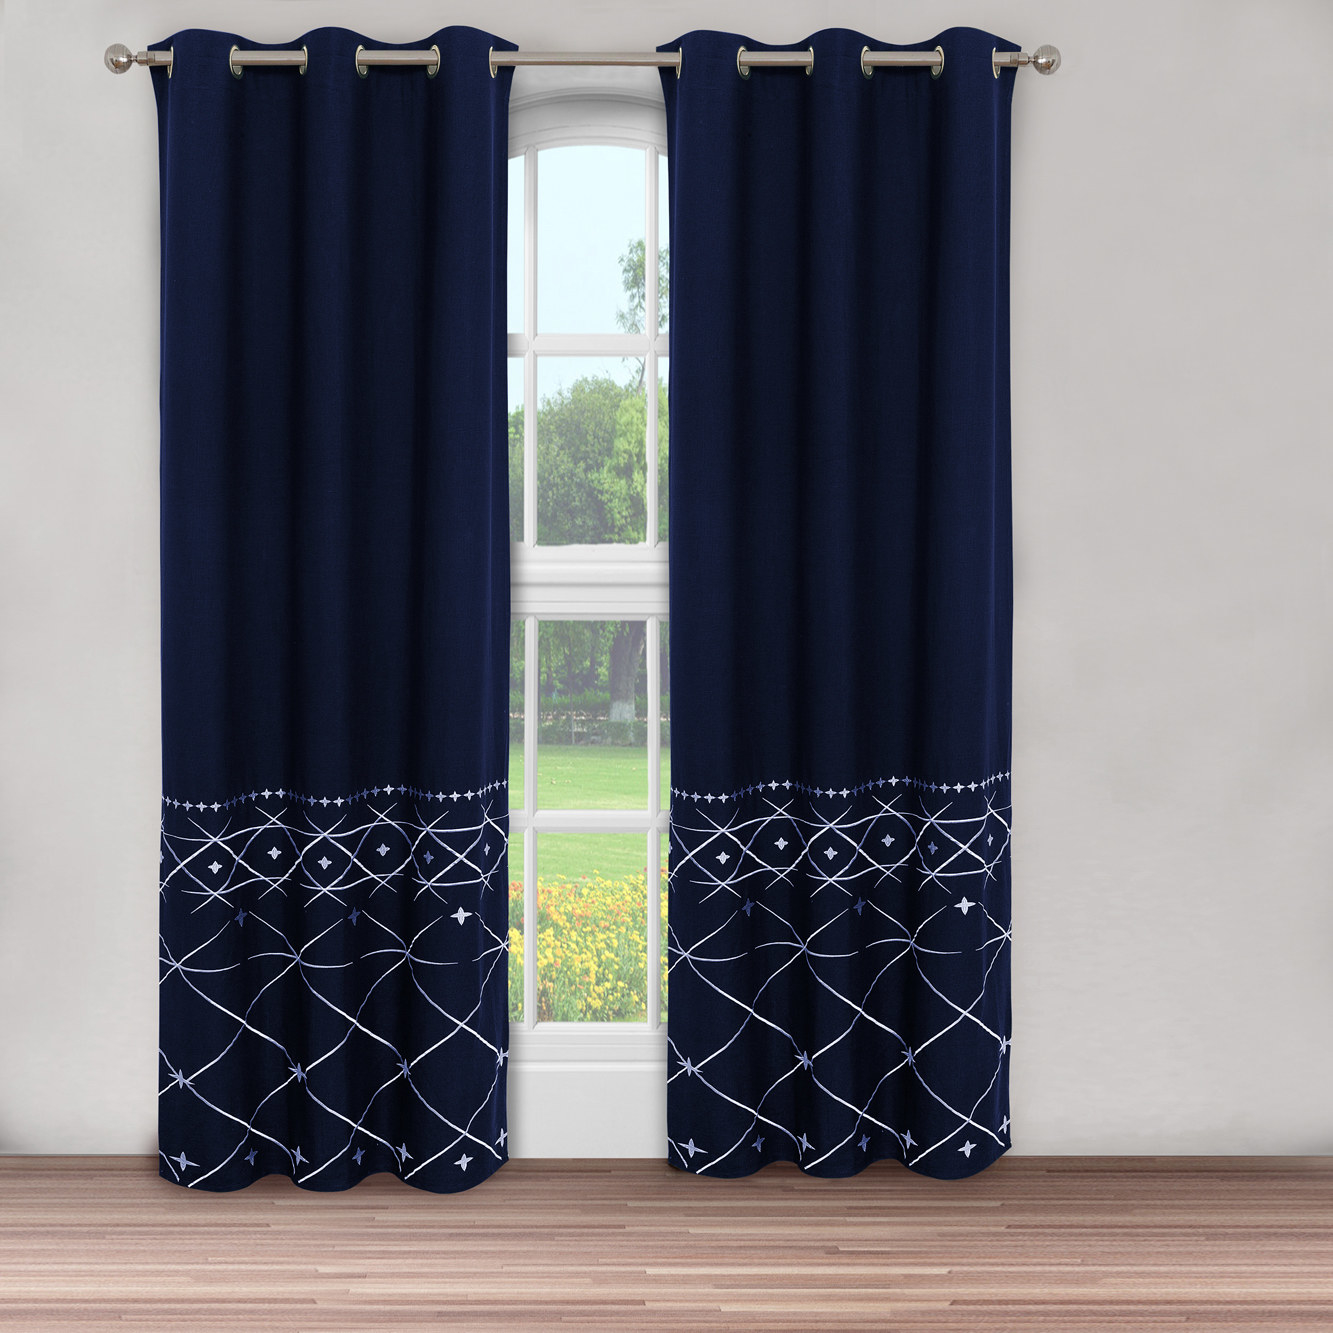 Navy curtains with a white tribal pattern